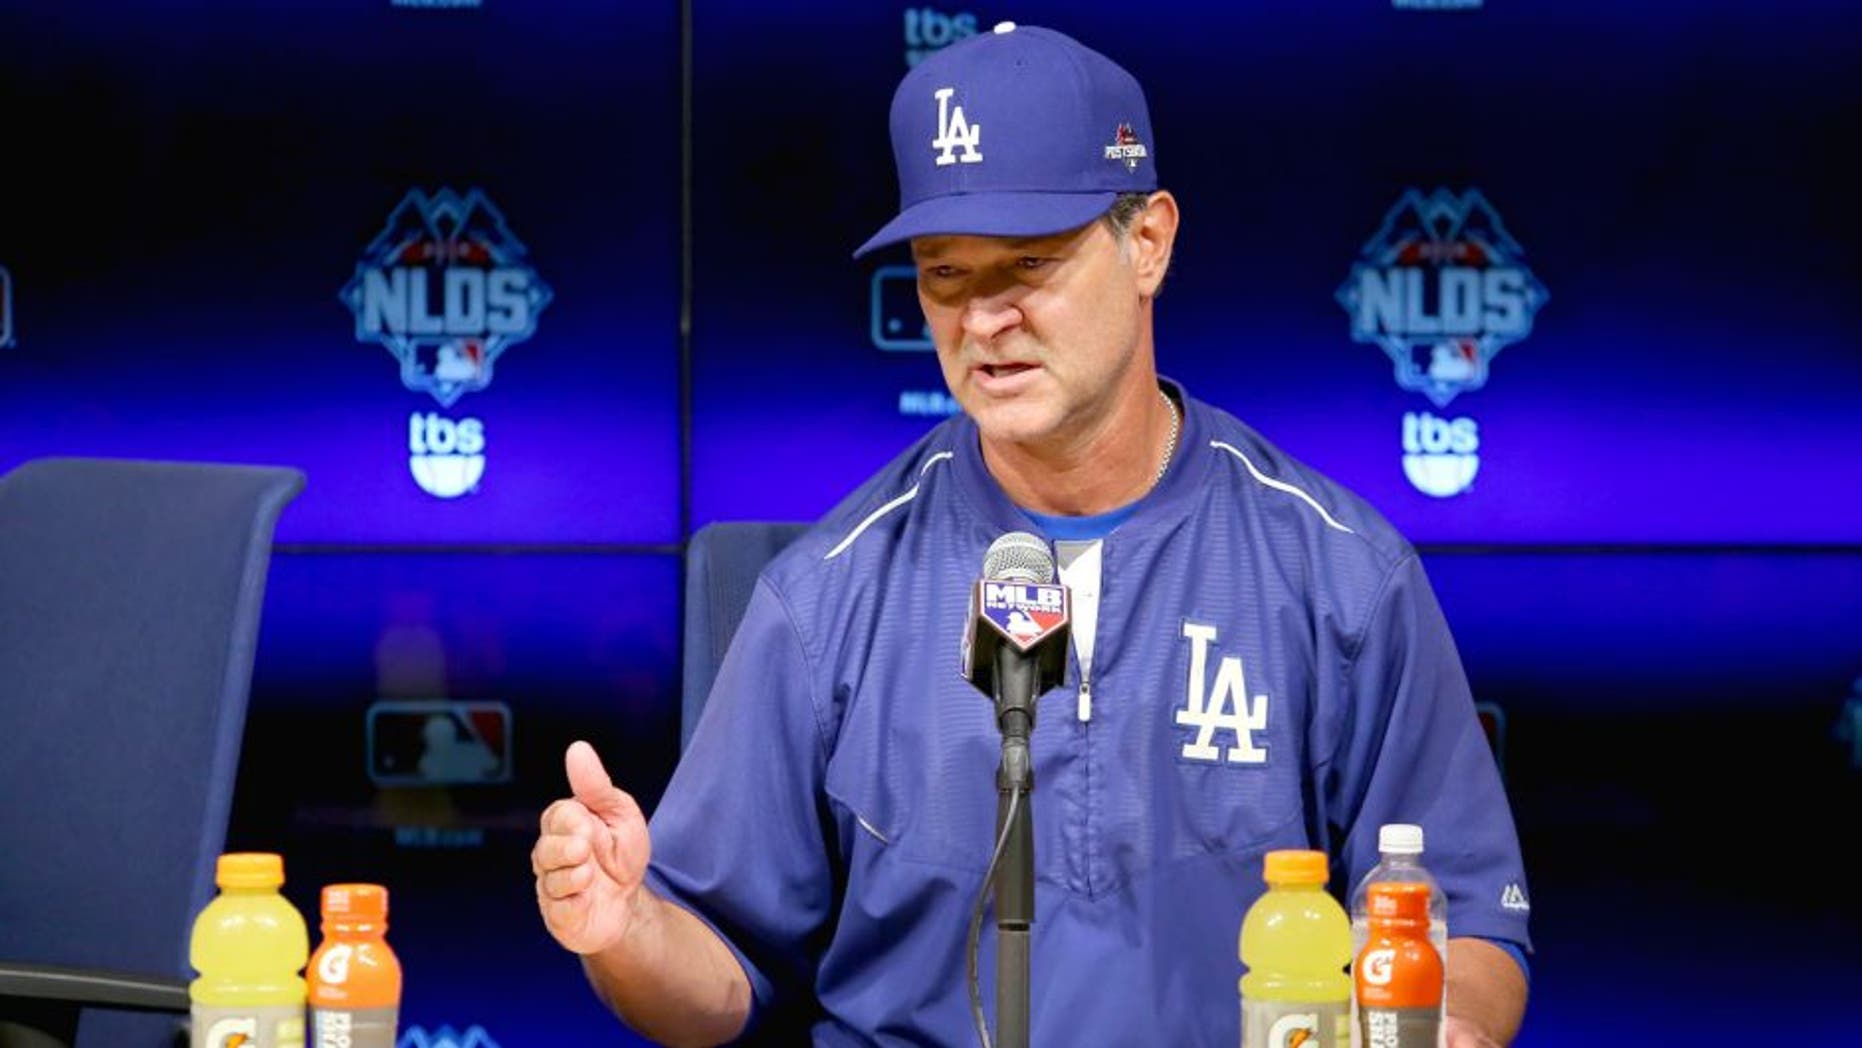 LOS ANGELES, CA - OCTOBER 10: Manager Don Mattingly #8 of the Los Angeles Dodgers speaks to the media after the Dodgers 5-2 win against the New York Mets in game two of the National League Division Series at Dodger Stadium on October 10, 2015 in Los Angeles, California. (Photo by Sean M. Haffey/Getty Images)